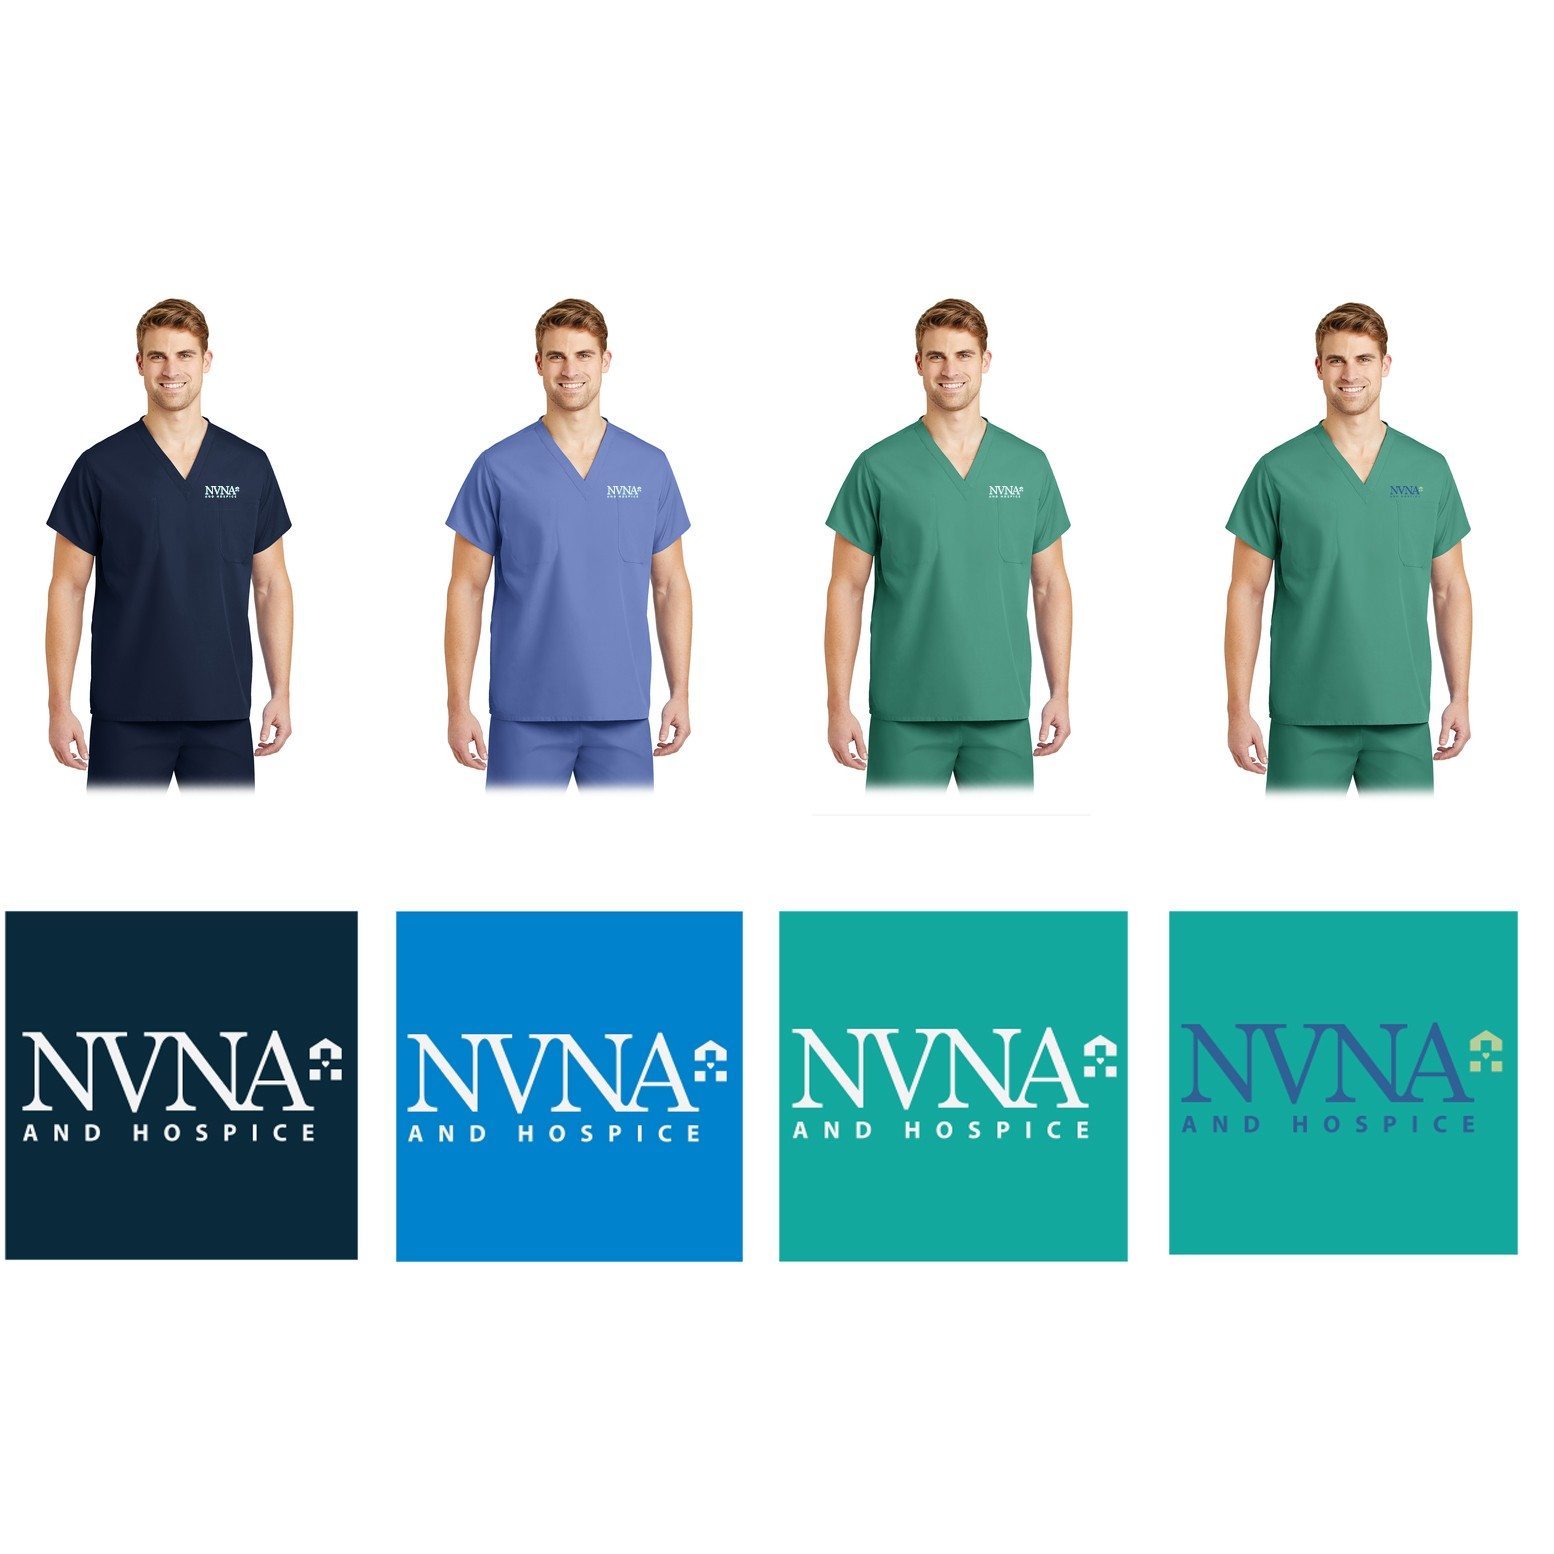 08ddcf2f75a NVNA And Hospice CornerStone Brand Reversible V-Neck Scrub Top With  Embroidered Logo